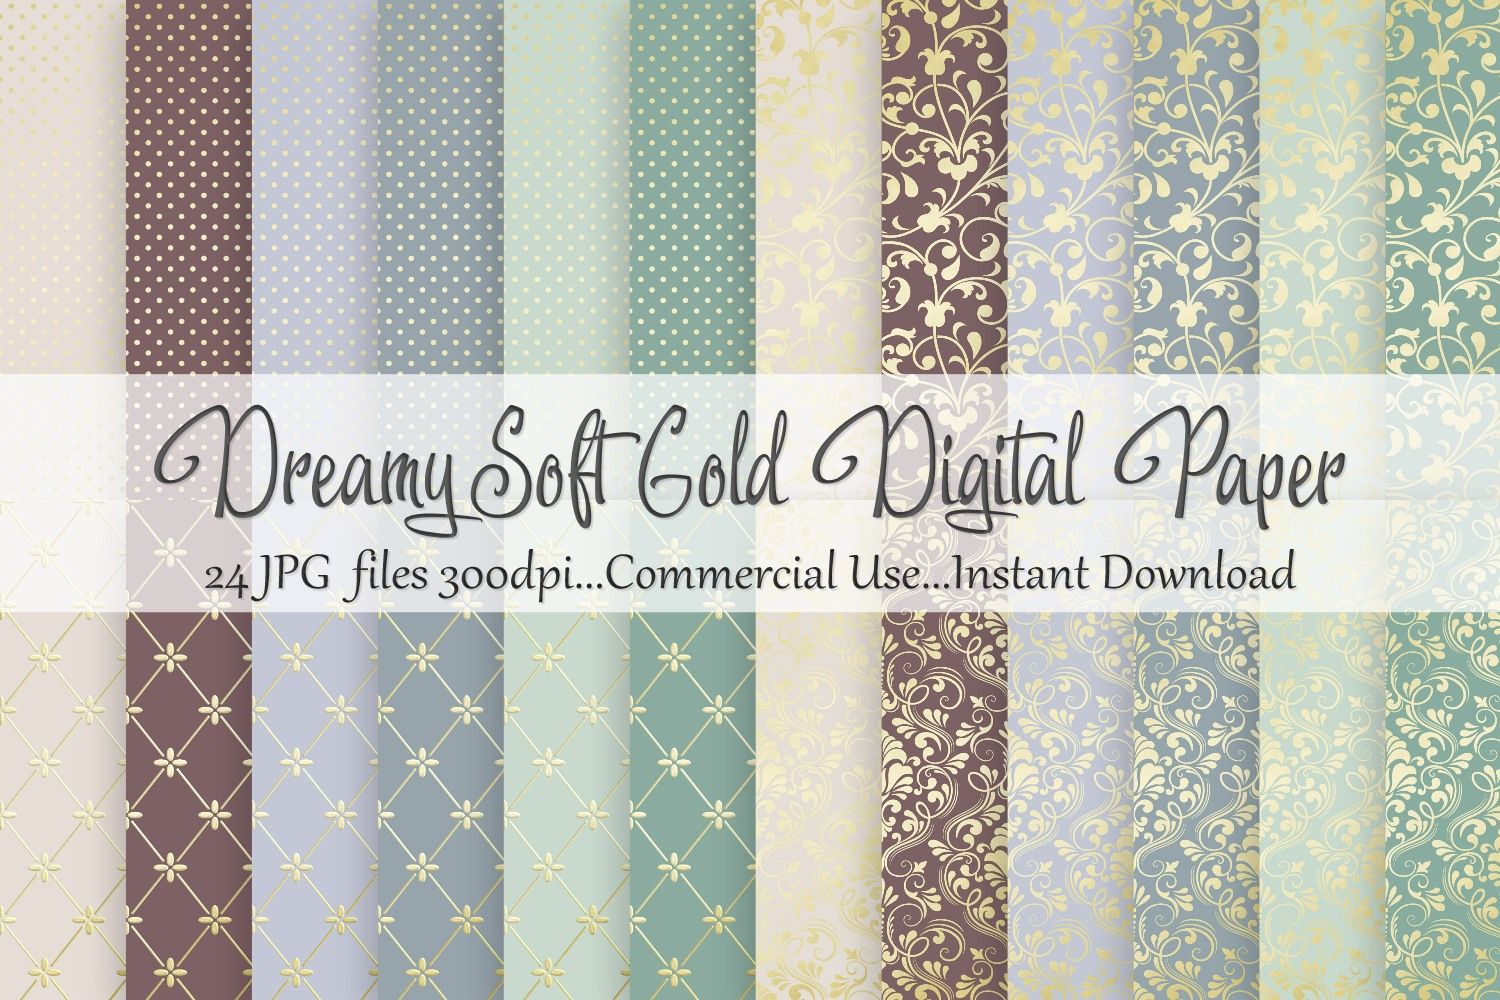 Dreamy Soft Gold Digital Paper example image 1